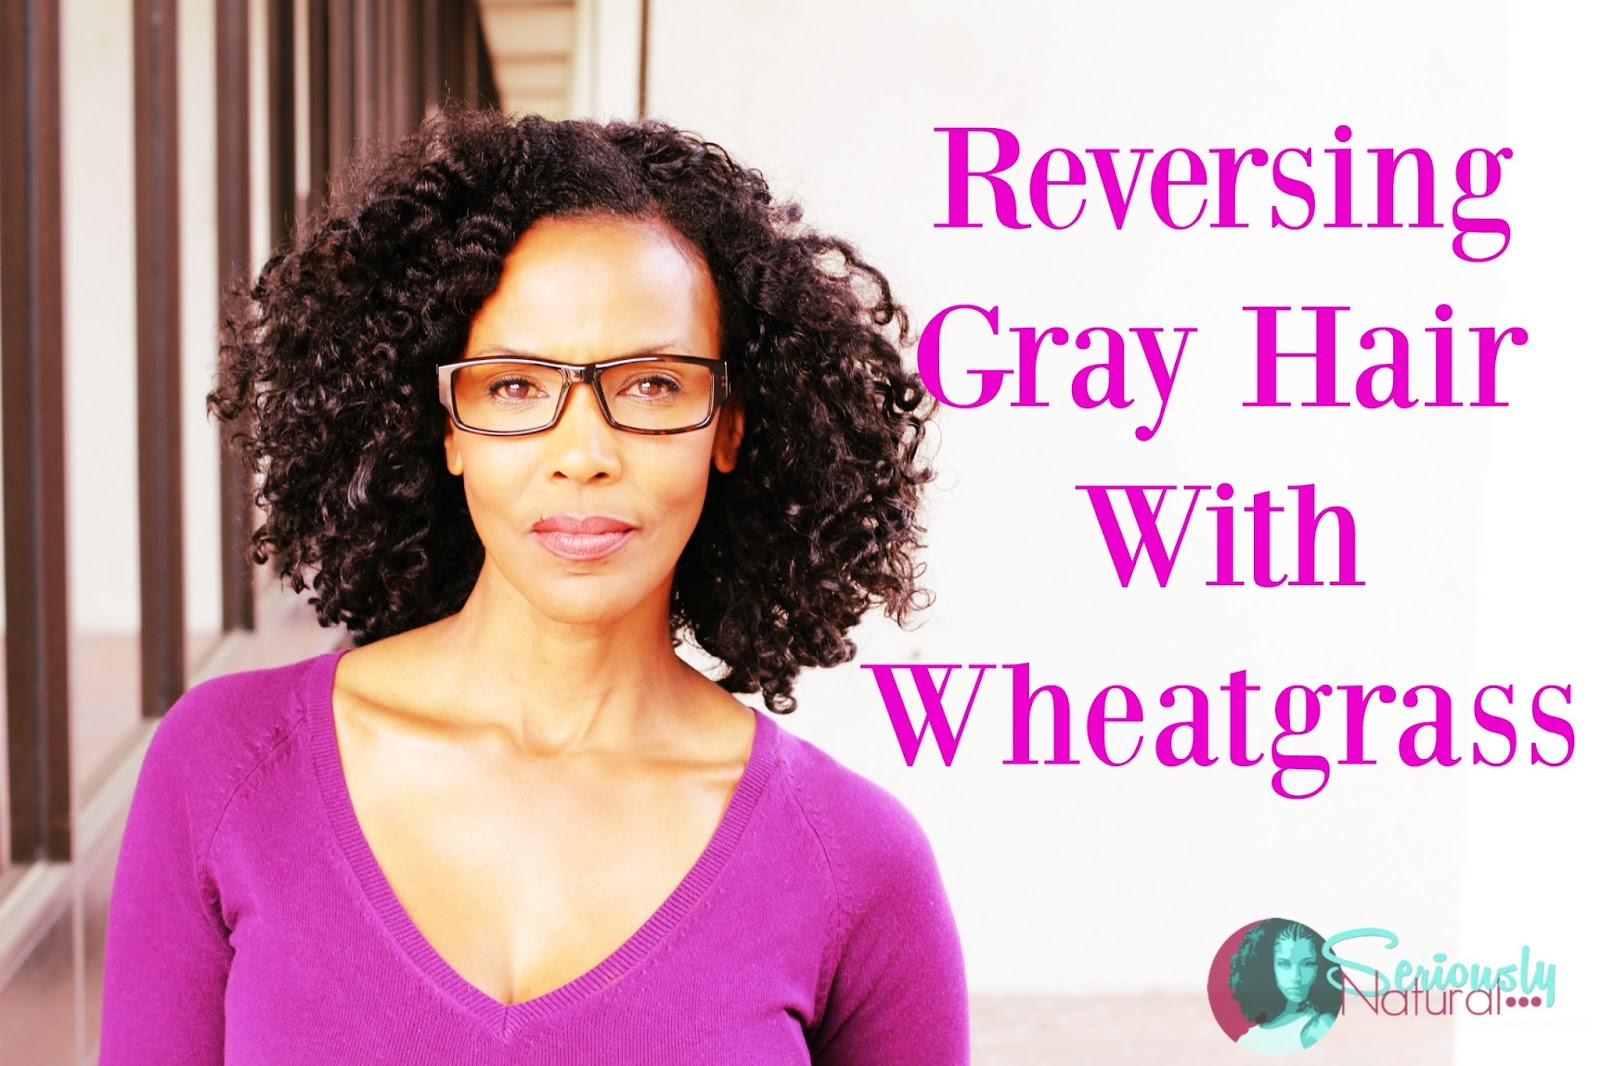 Reversing Gray Hair With Wheatgrass